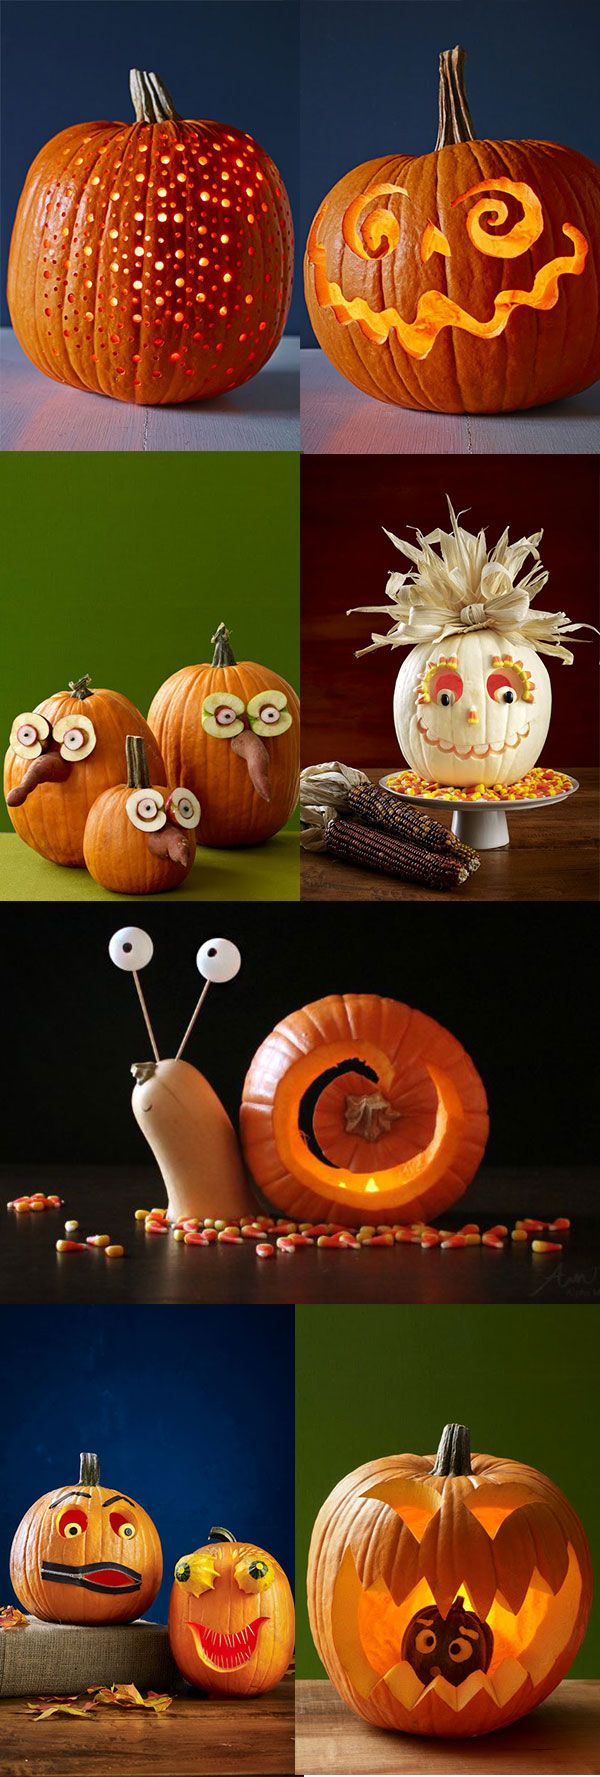 27 Creative and Scary PumpkinCarving Ideas for halloween